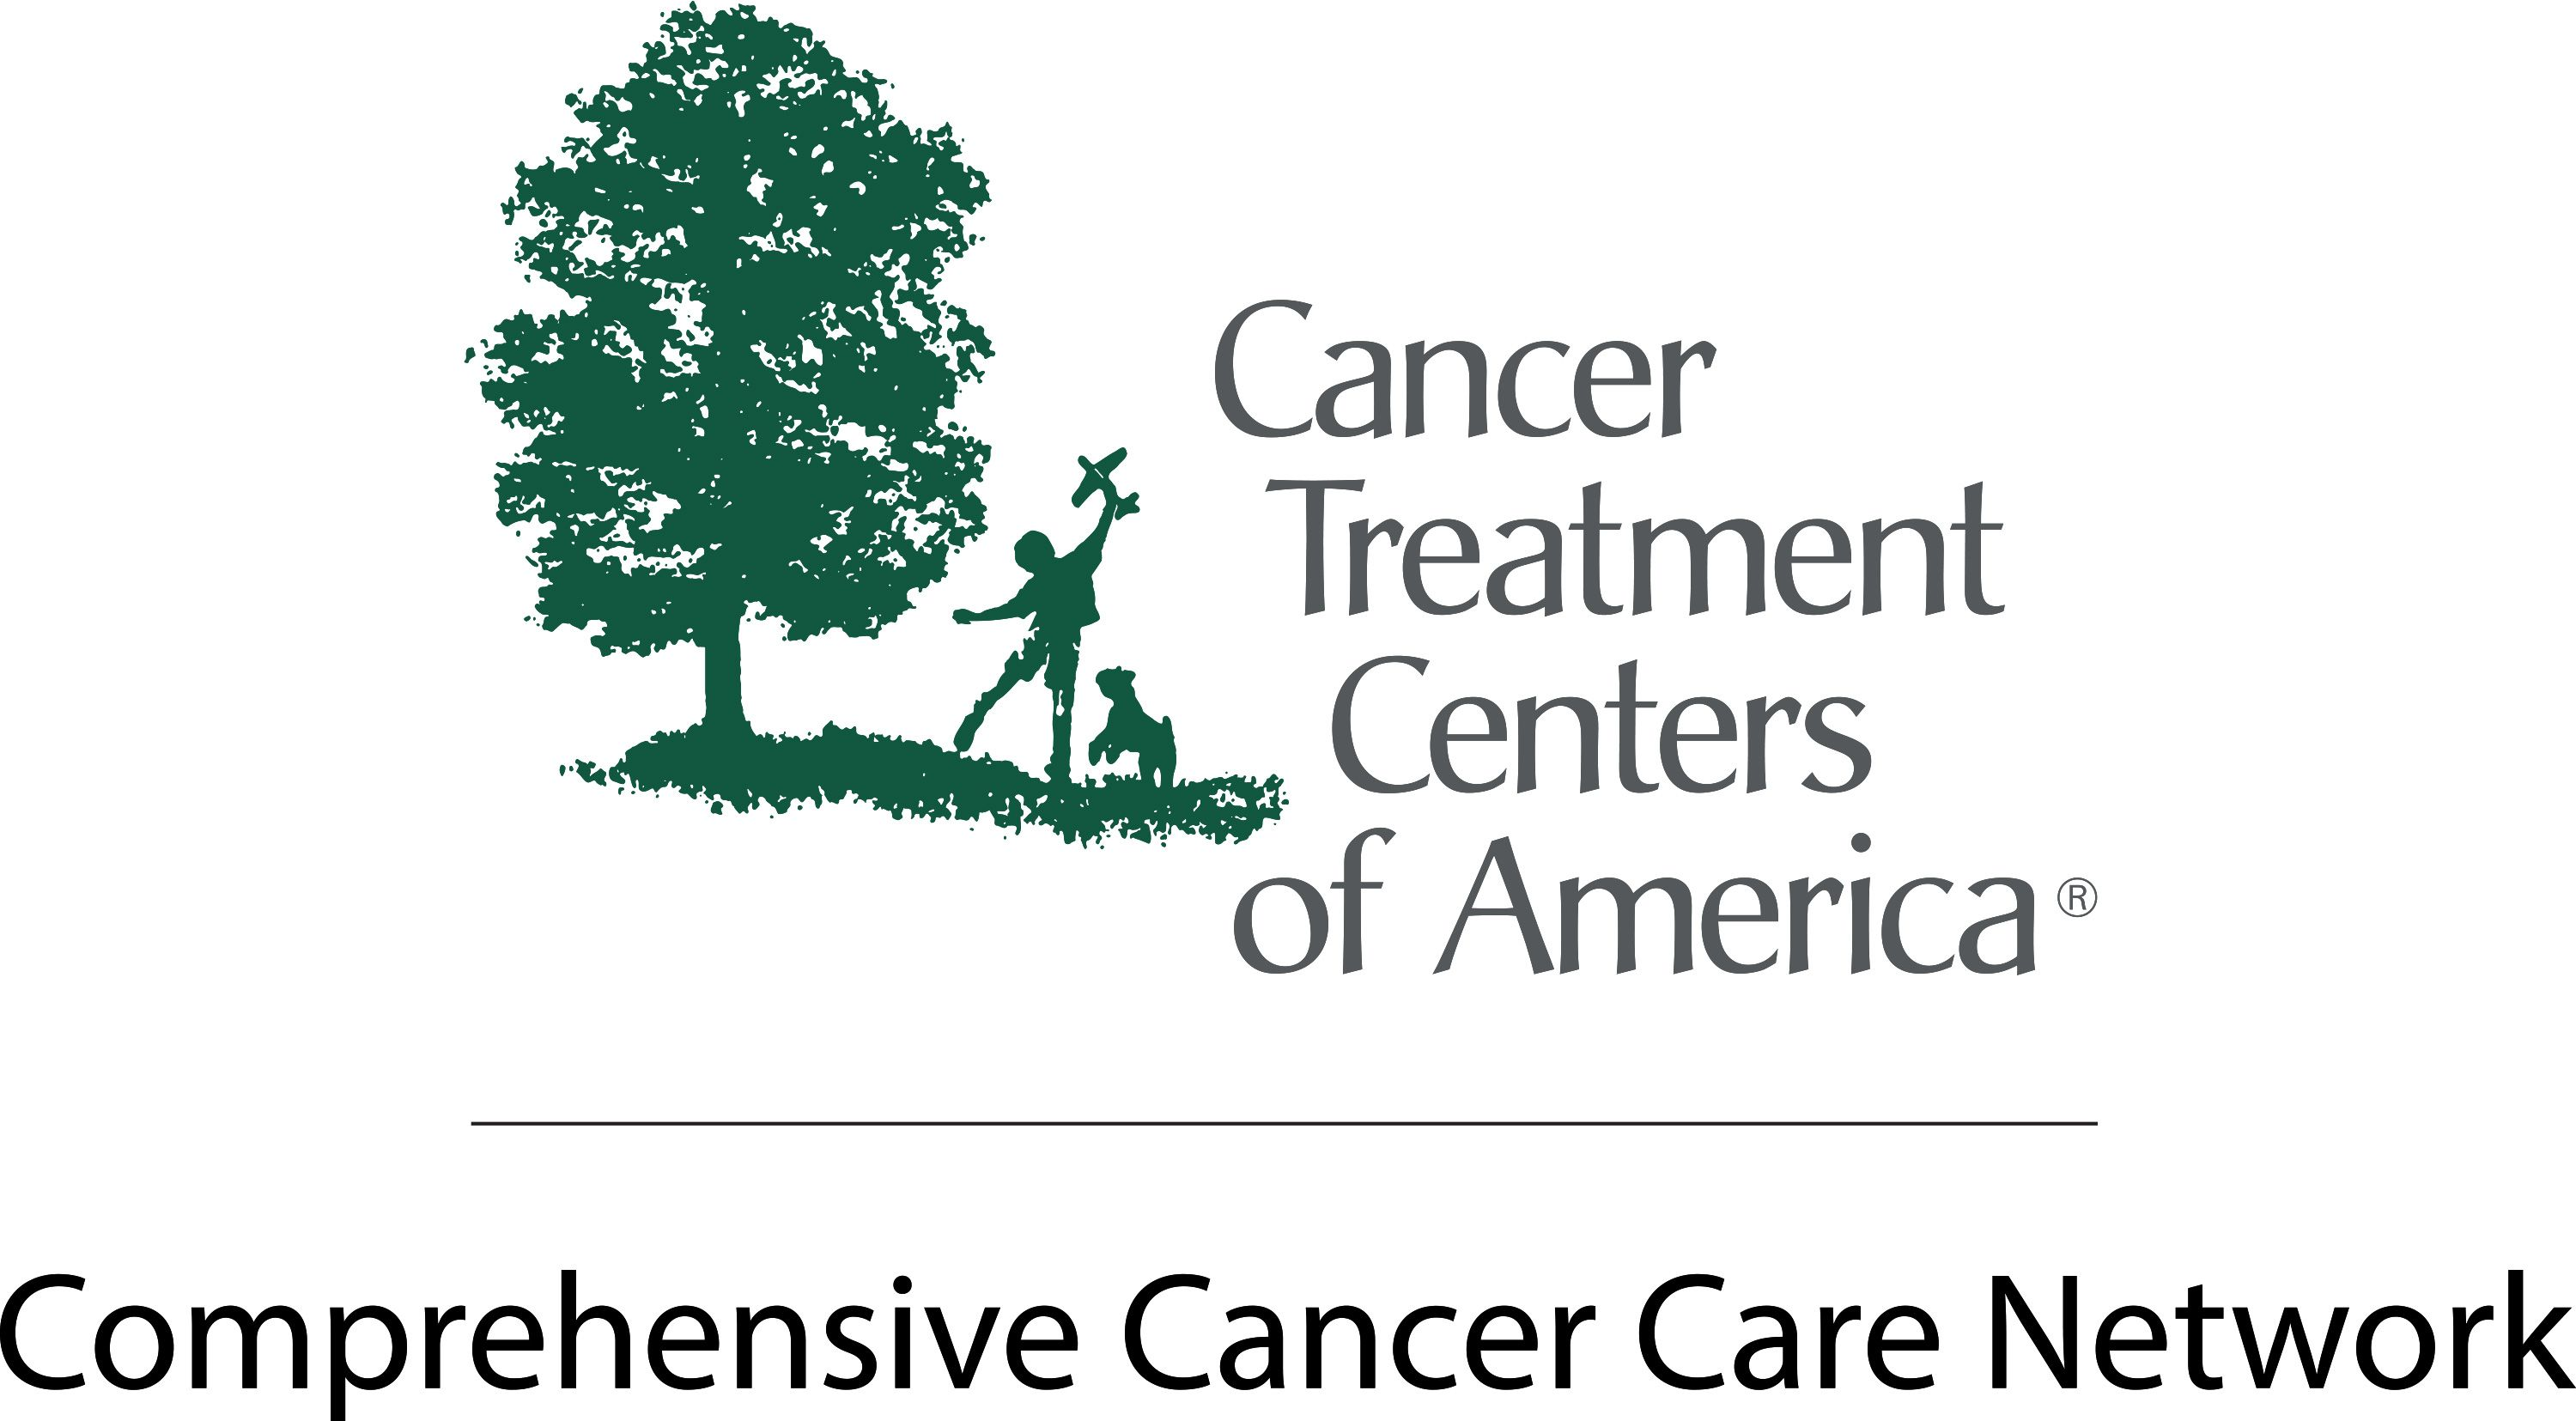 Partner | Oncology Network Providers | <b>Cancer Treatment Centers of America</b>